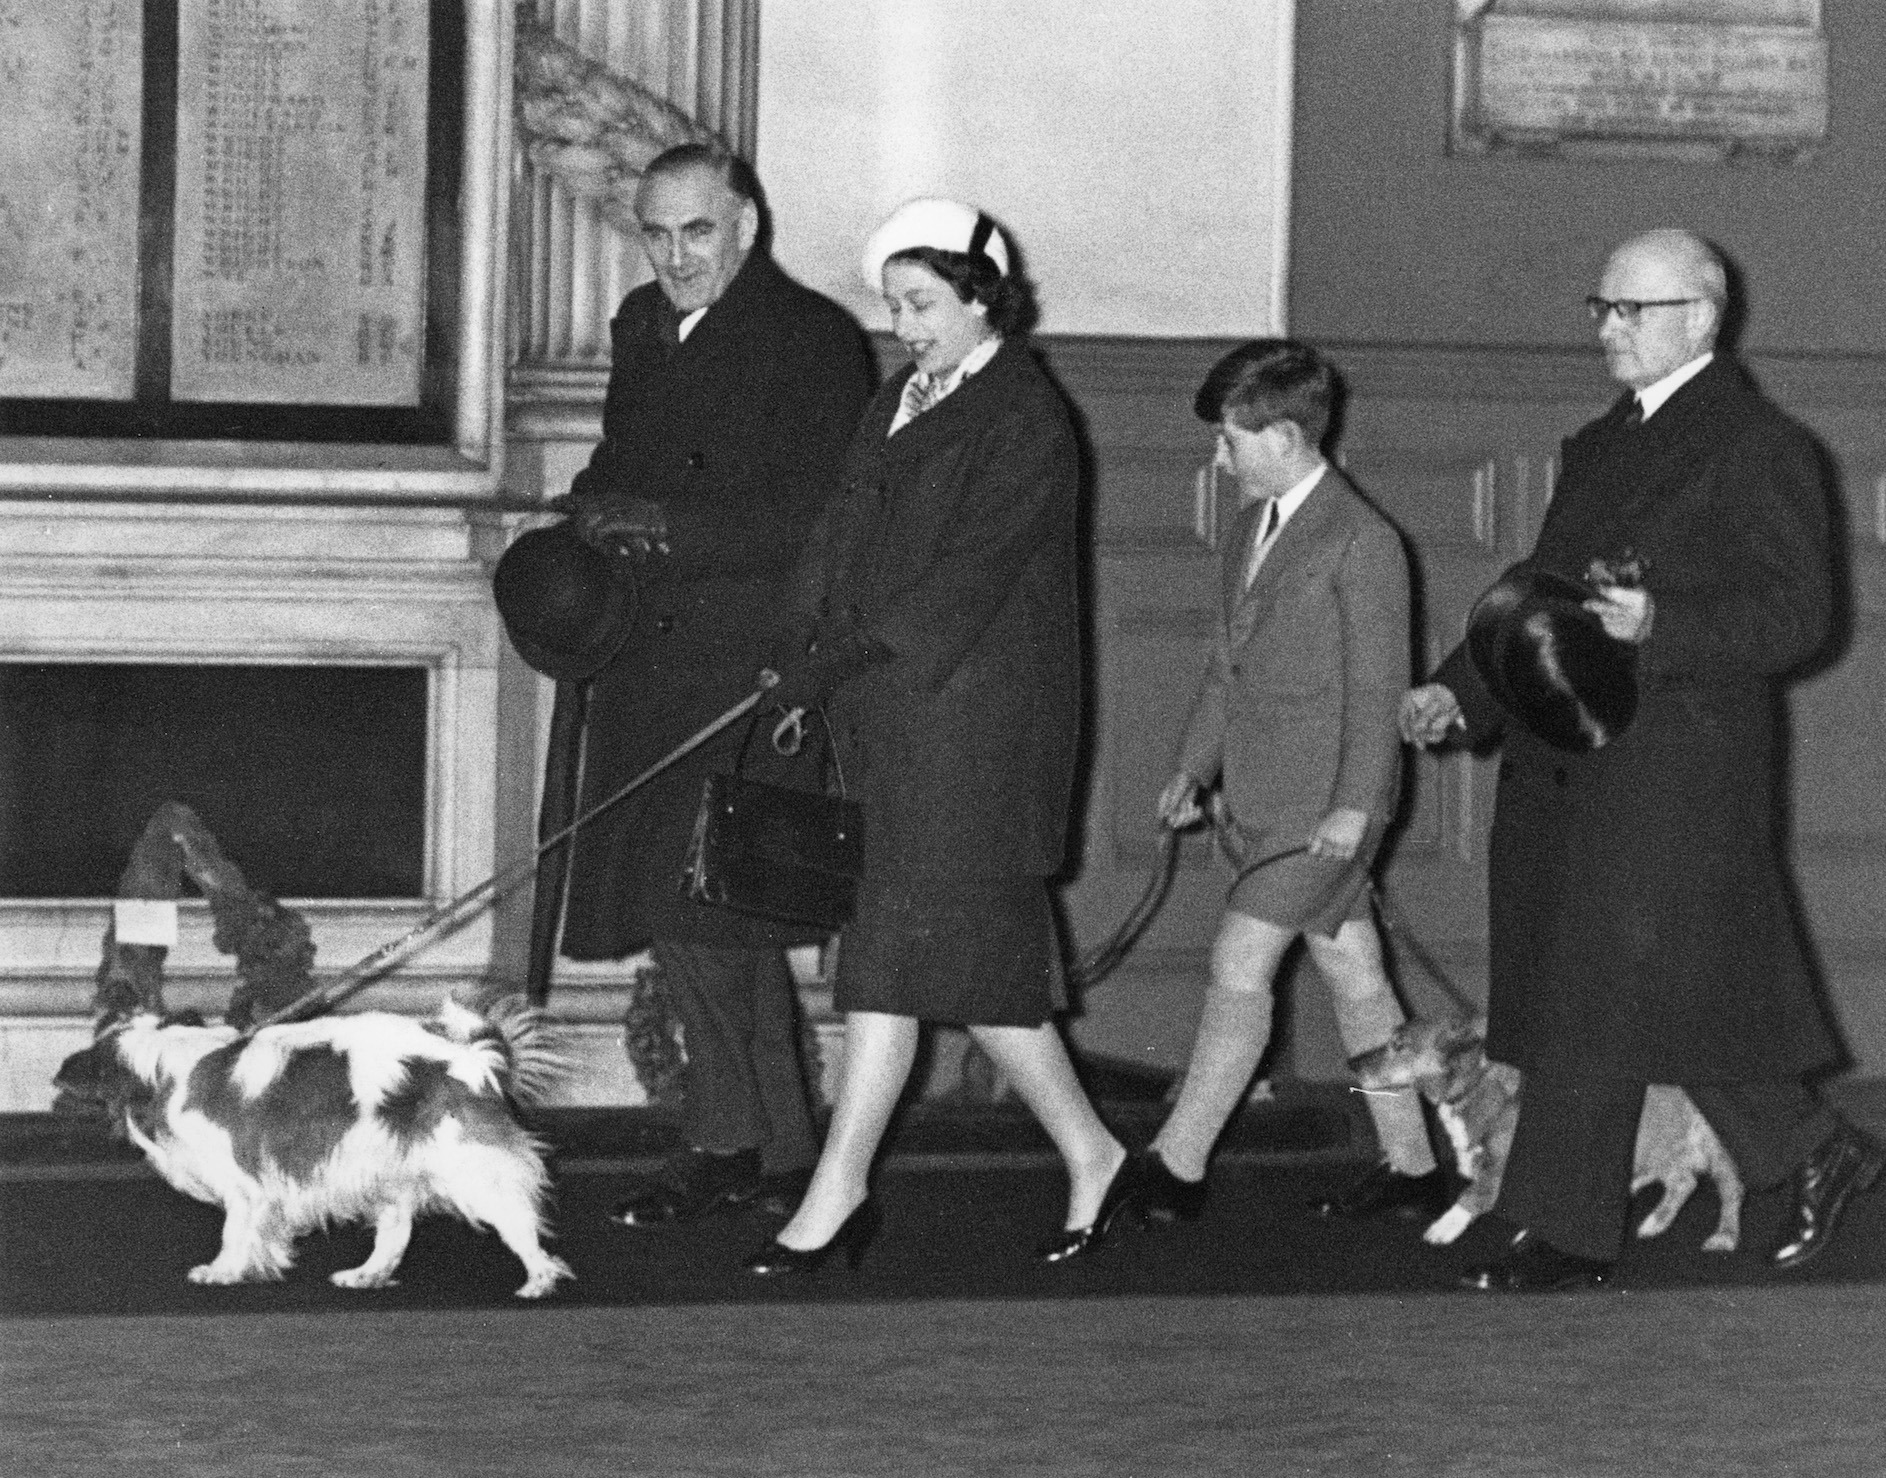 Queen Elizabeth II and Prince Charles walk through Liverpool Street Station in London with their dogs